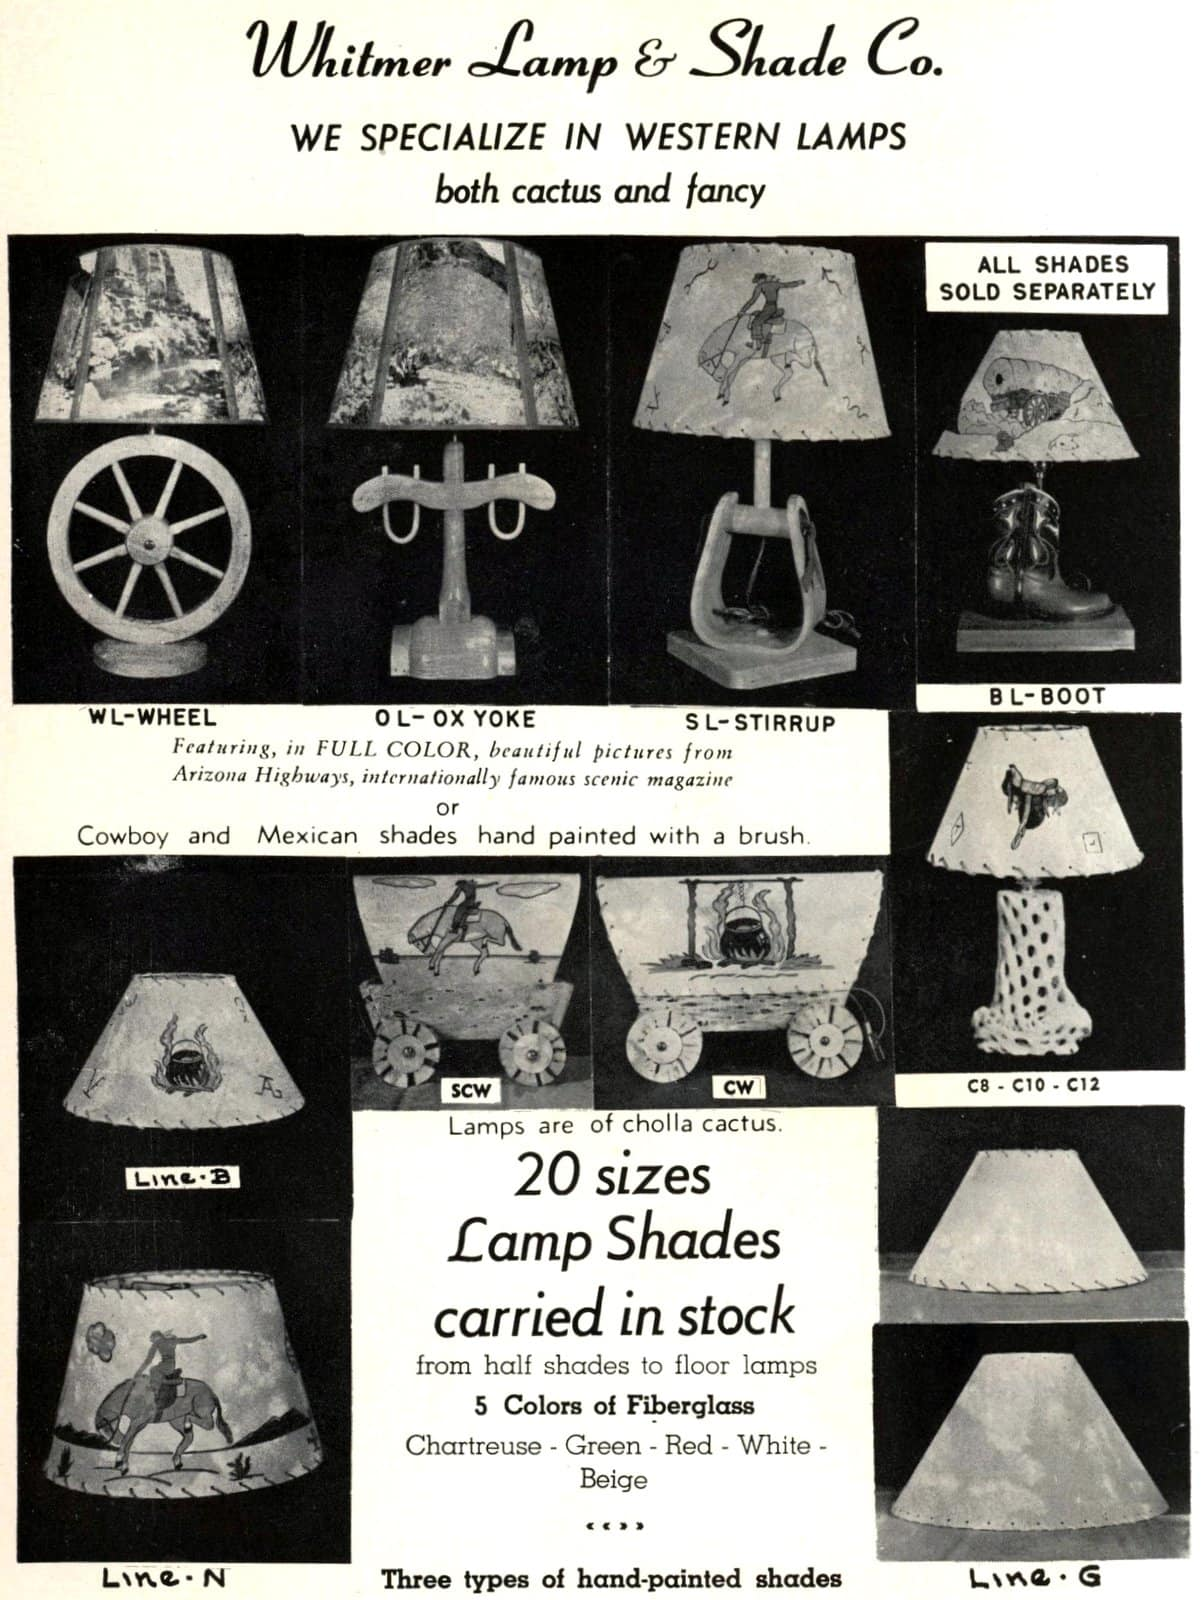 Old-fashioned Western-style lamps and hand-painted shades in cowboy and Mexican styles (1953)